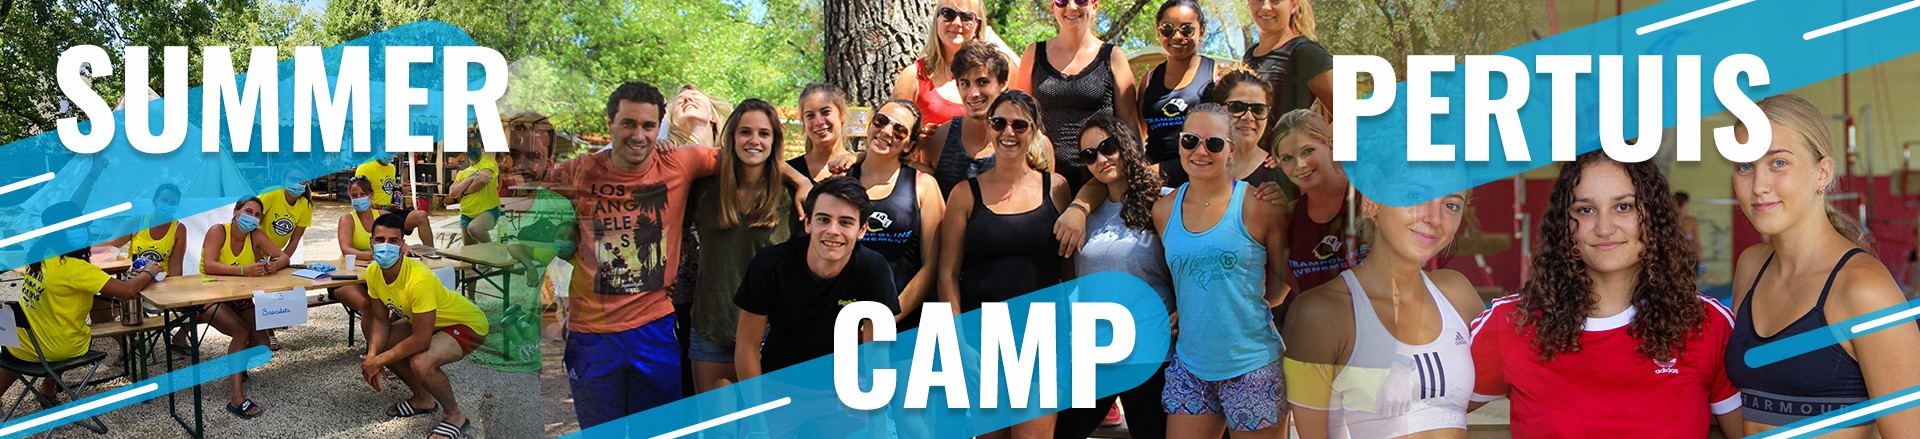 bandeau staff summer camp pertuis